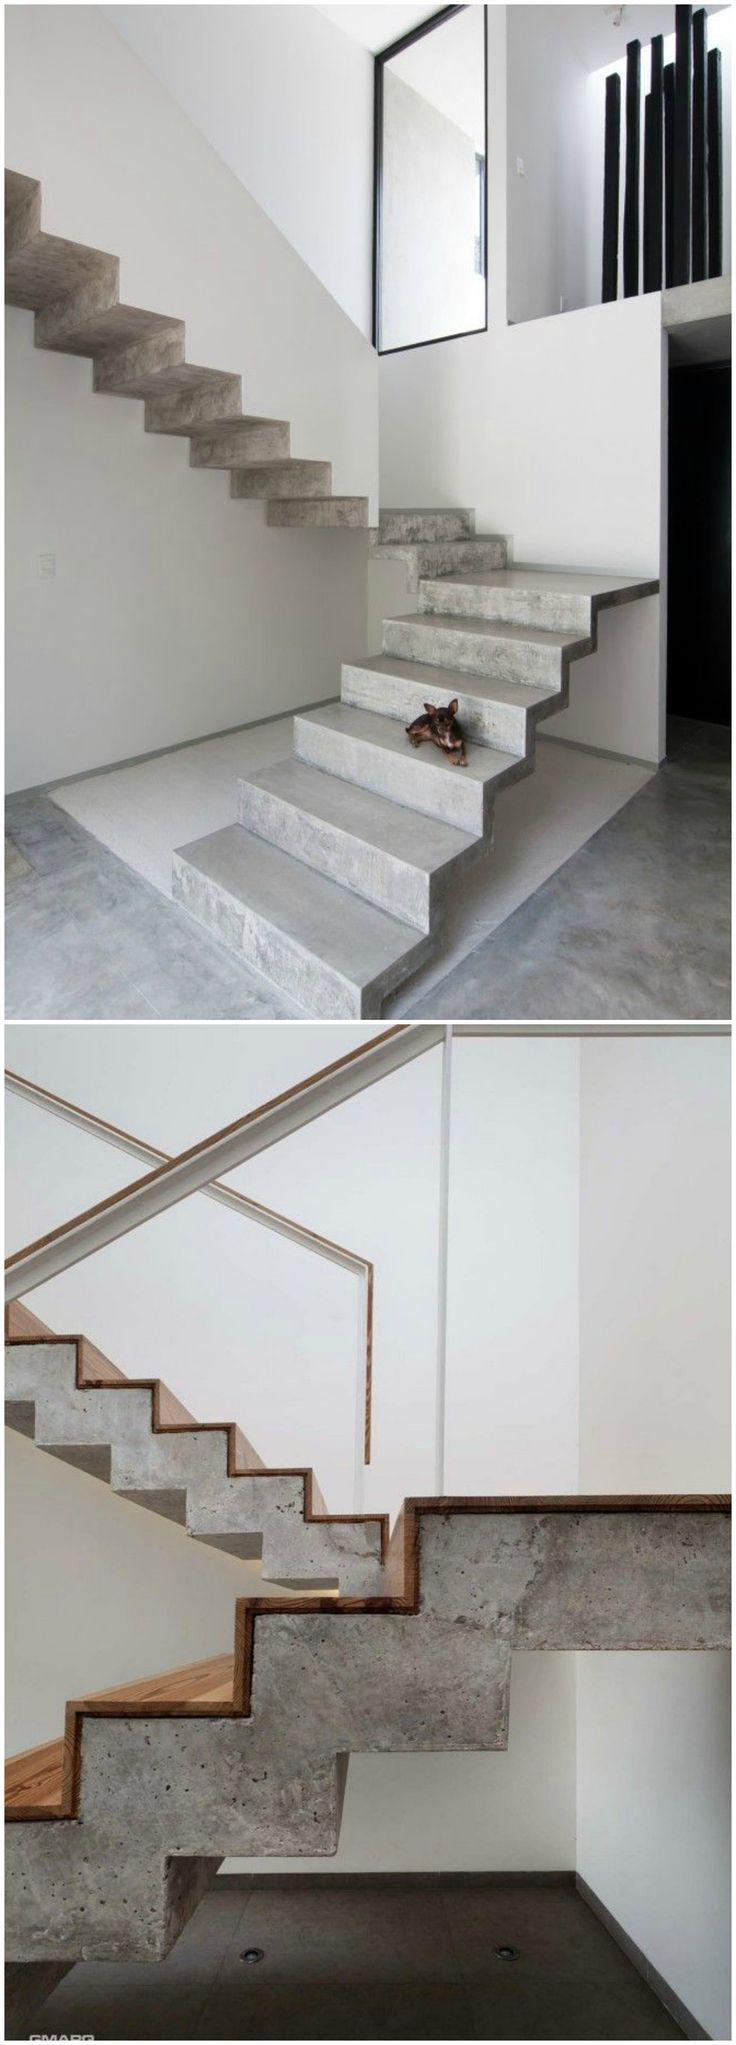 17 mejores ideas sobre dise o de escalera en pinterest for Gradas de escaleras